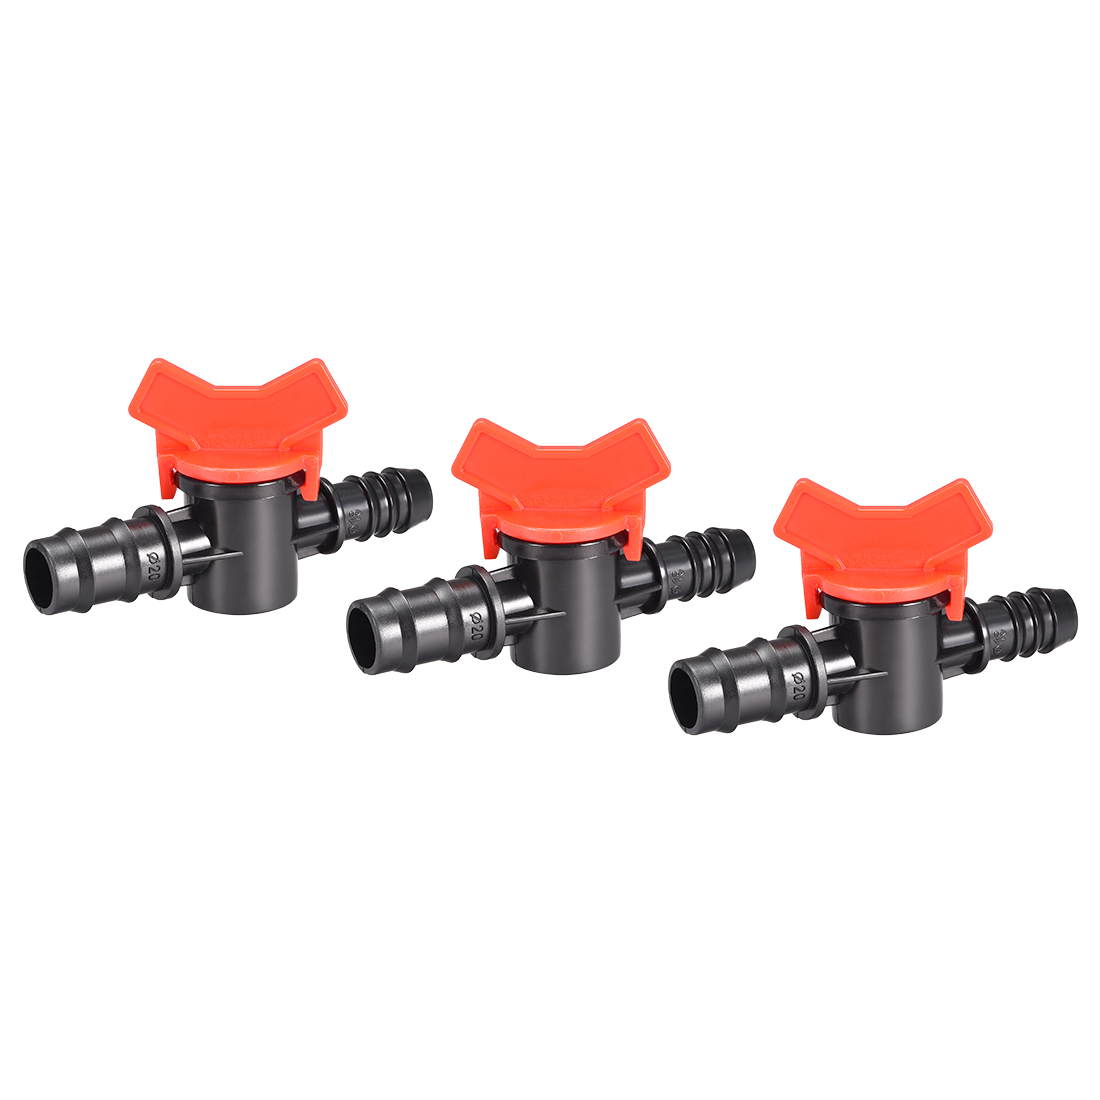 """Drip Irrigation Barbed Valve for 1/2"""" x 5/8"""" Double Male Barbed Valve 3pcs"""